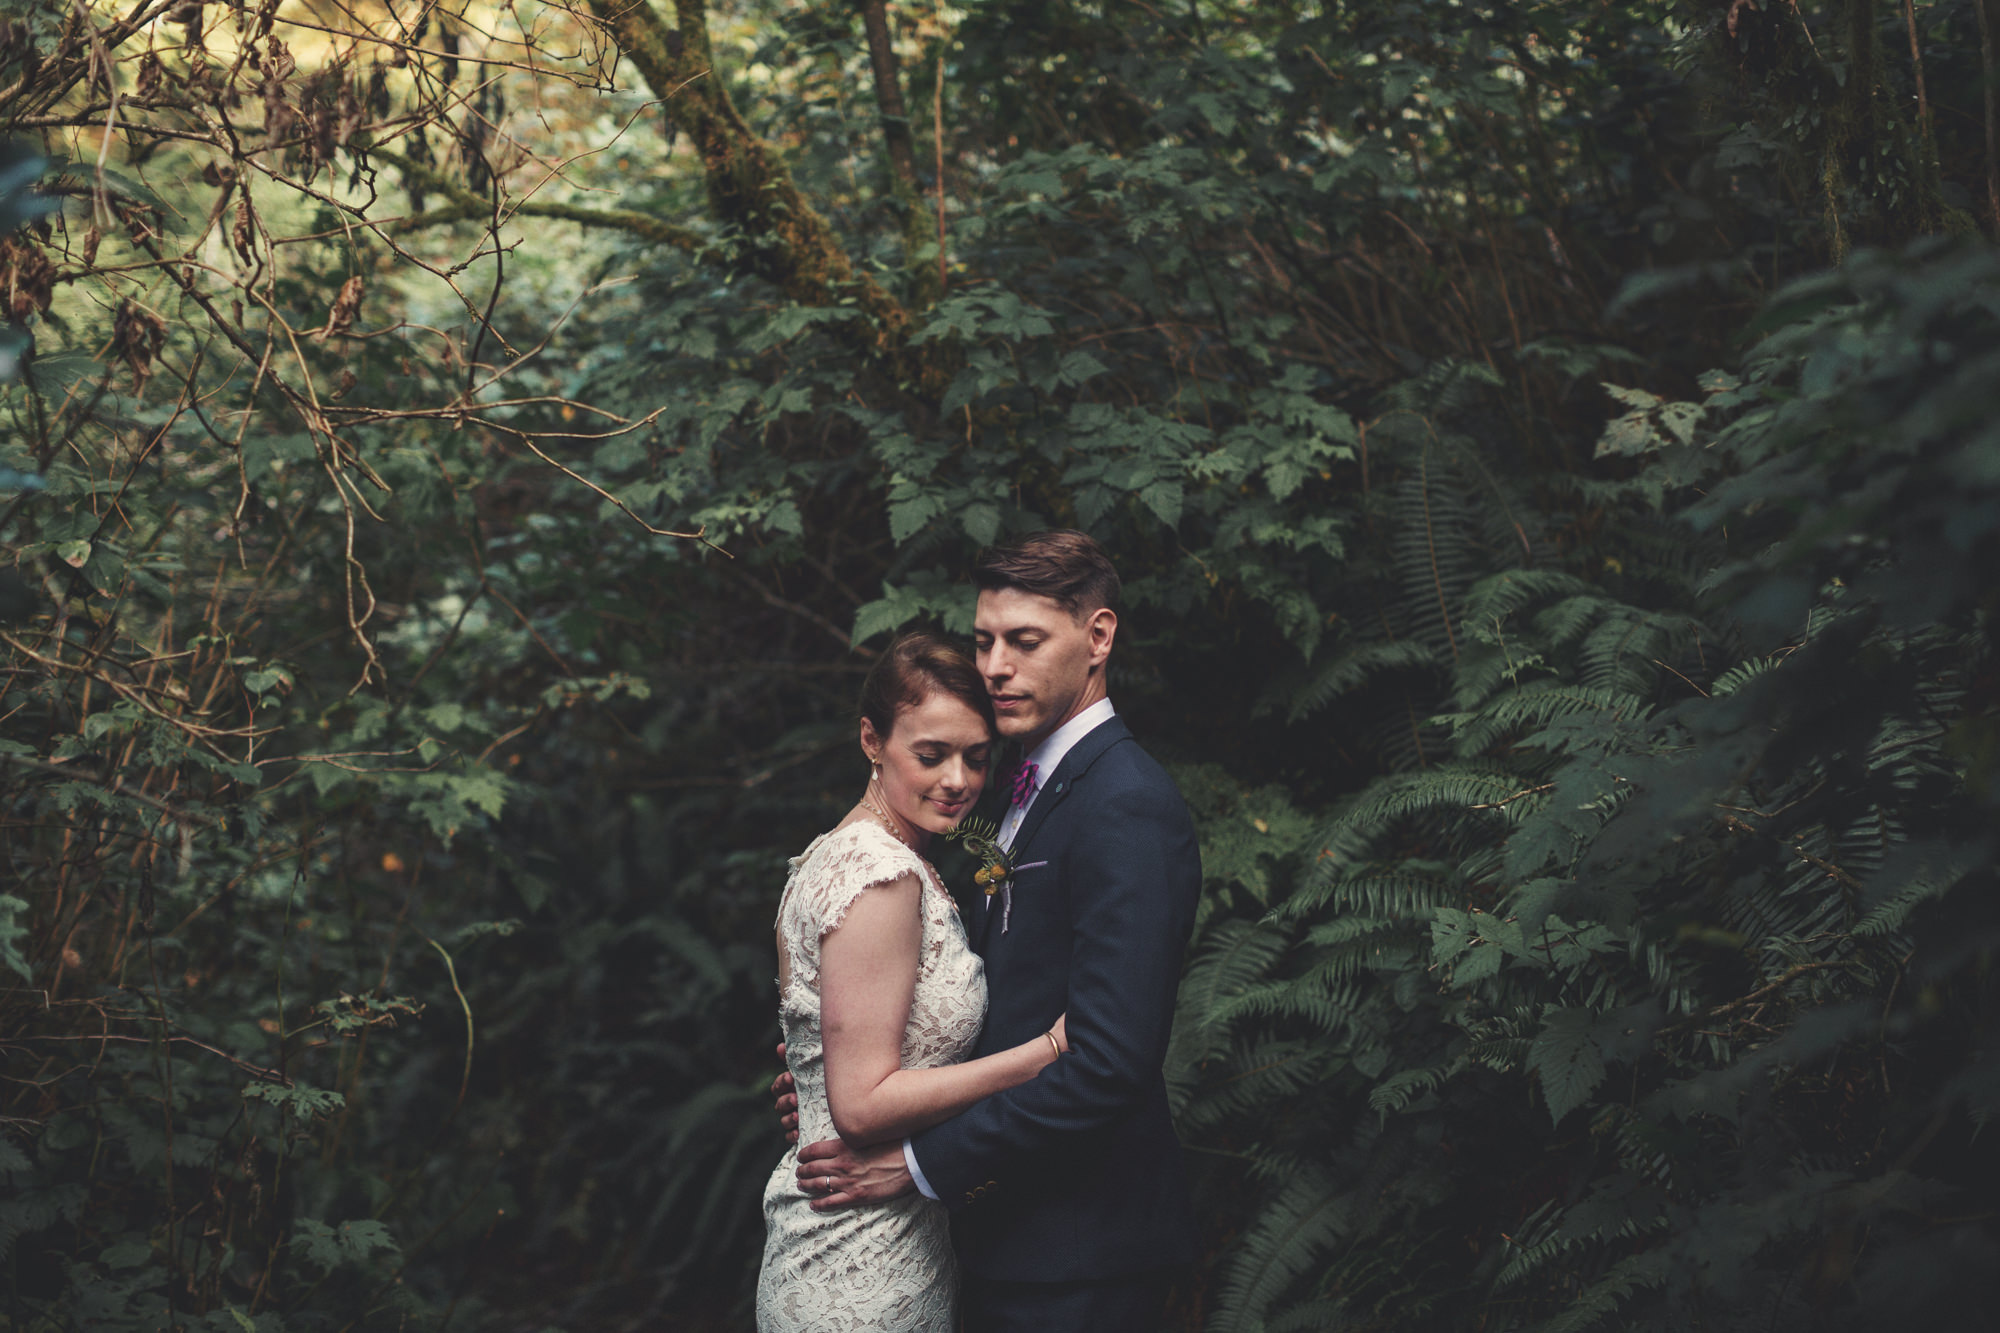 Oregon Backyard Wedding ©Anne-Claire Brun 201